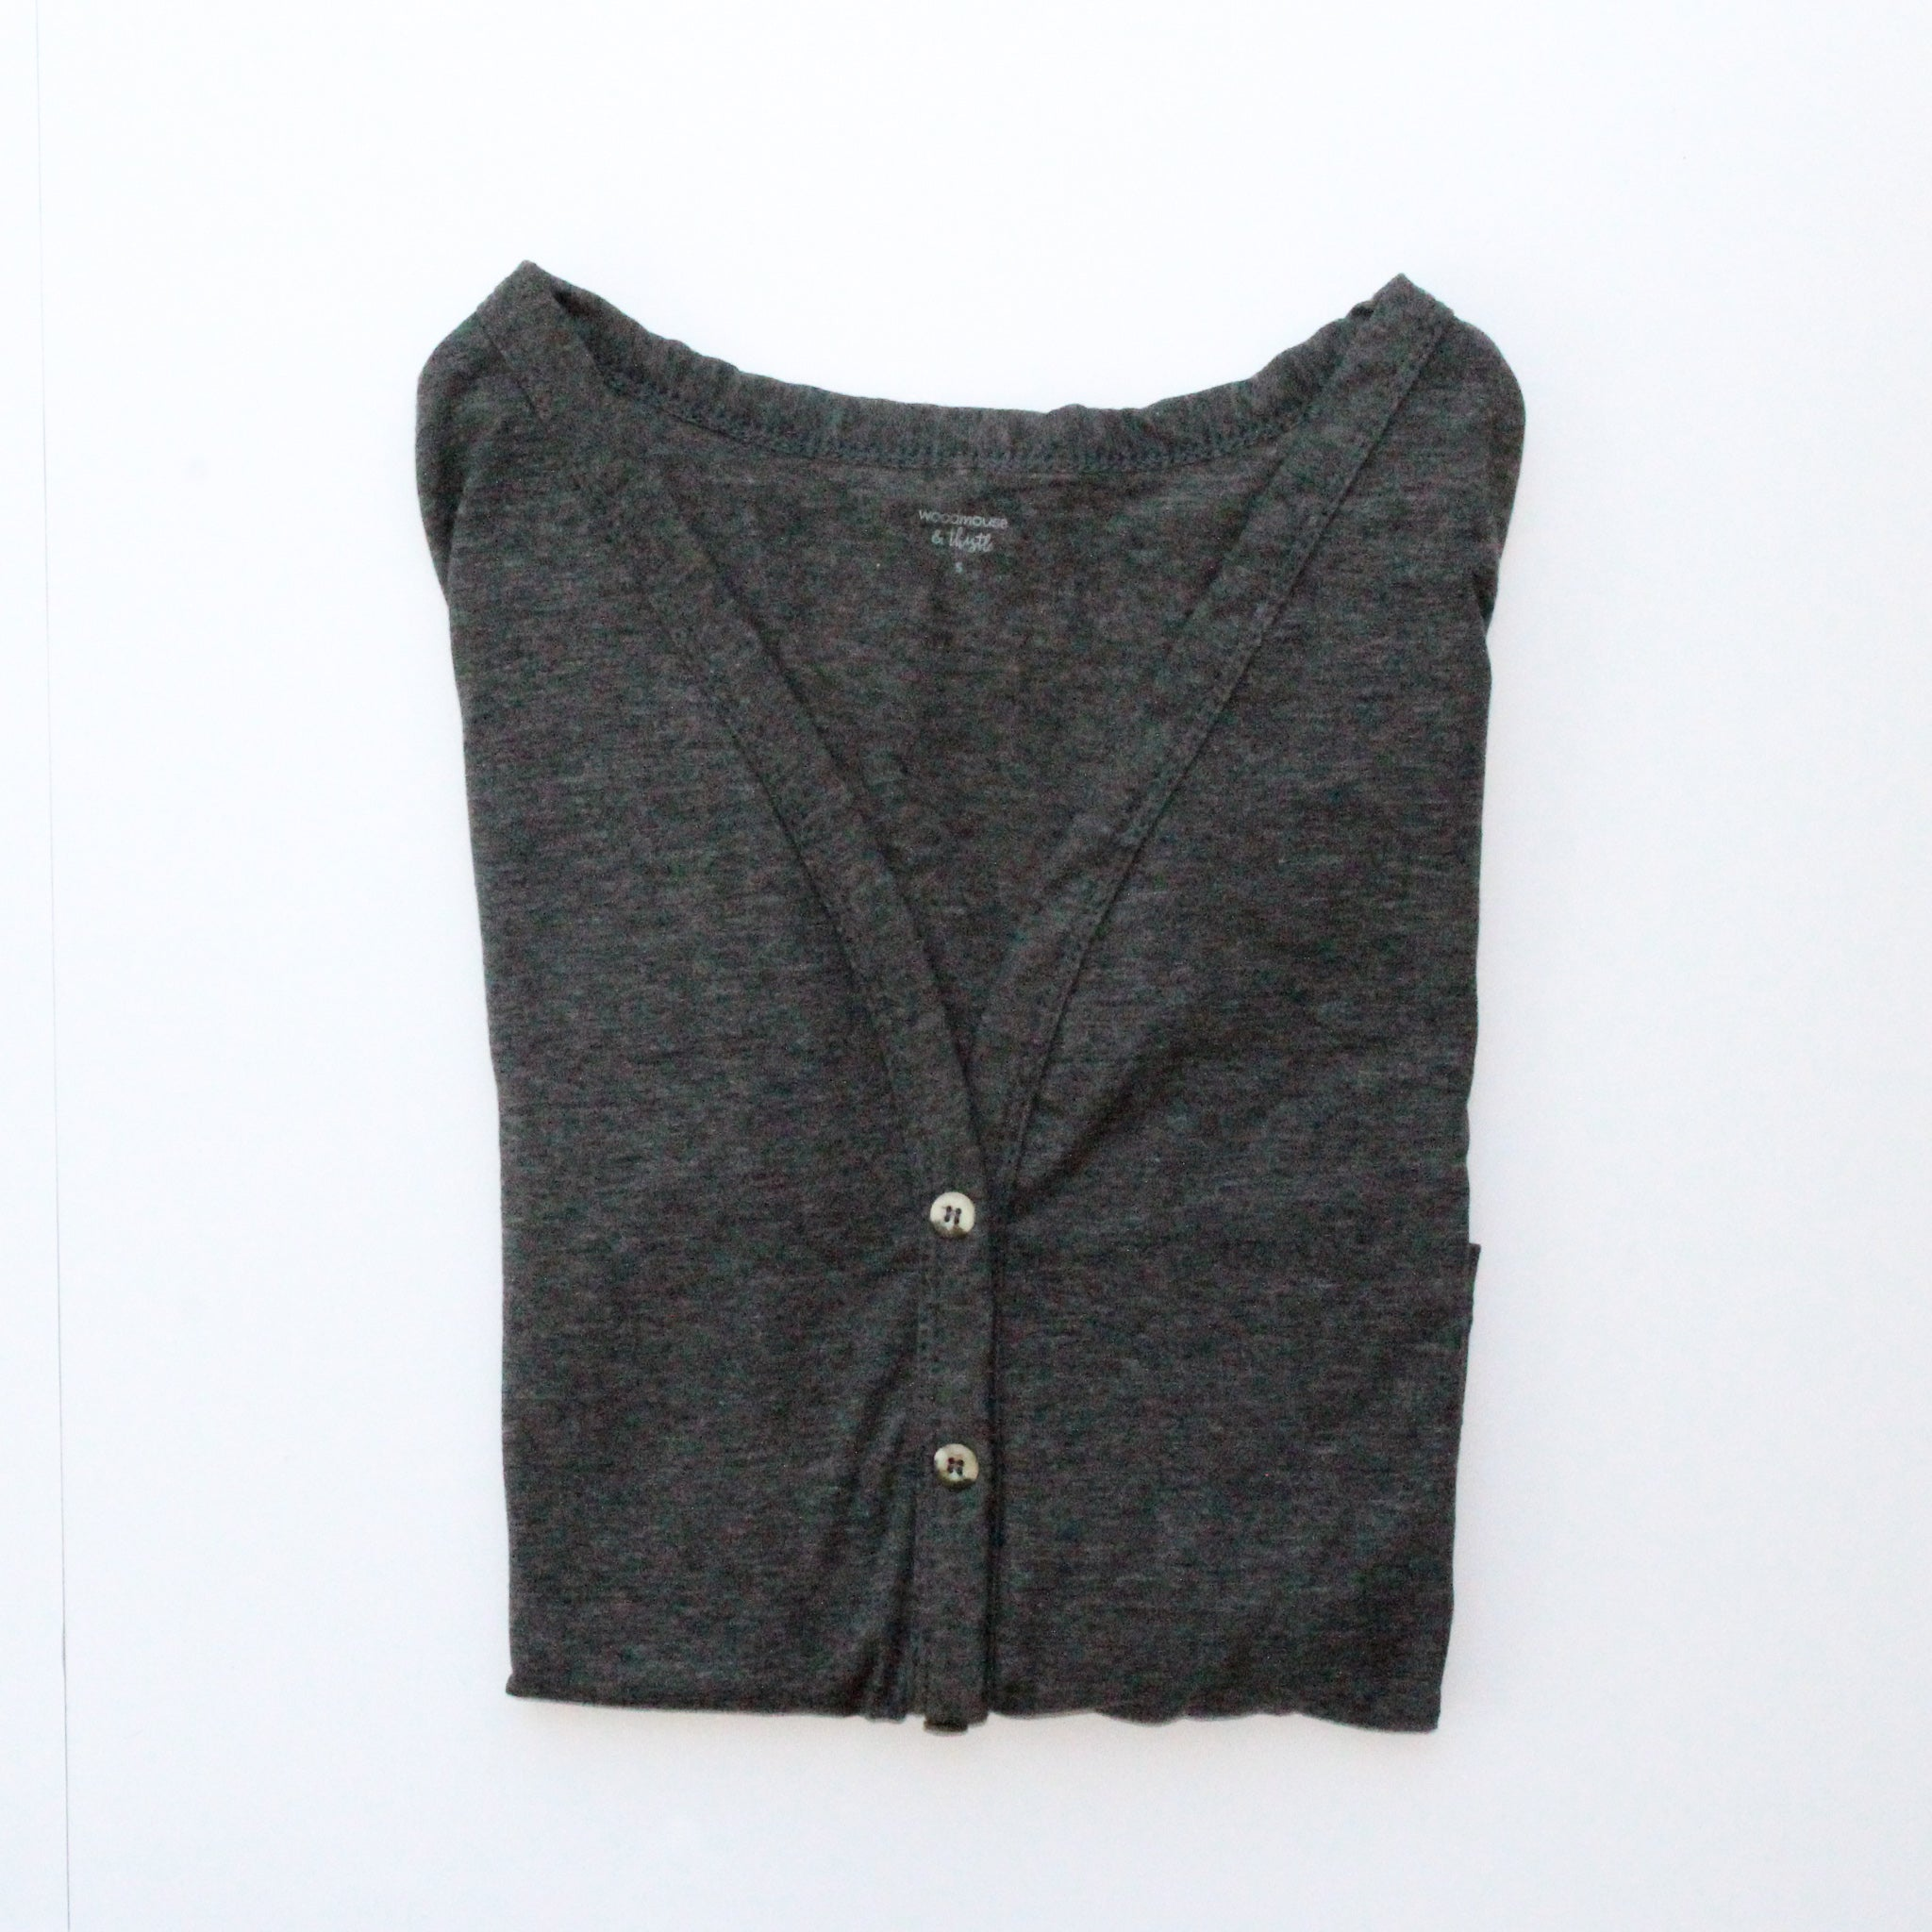 Heathered Coal Women's Cardigan